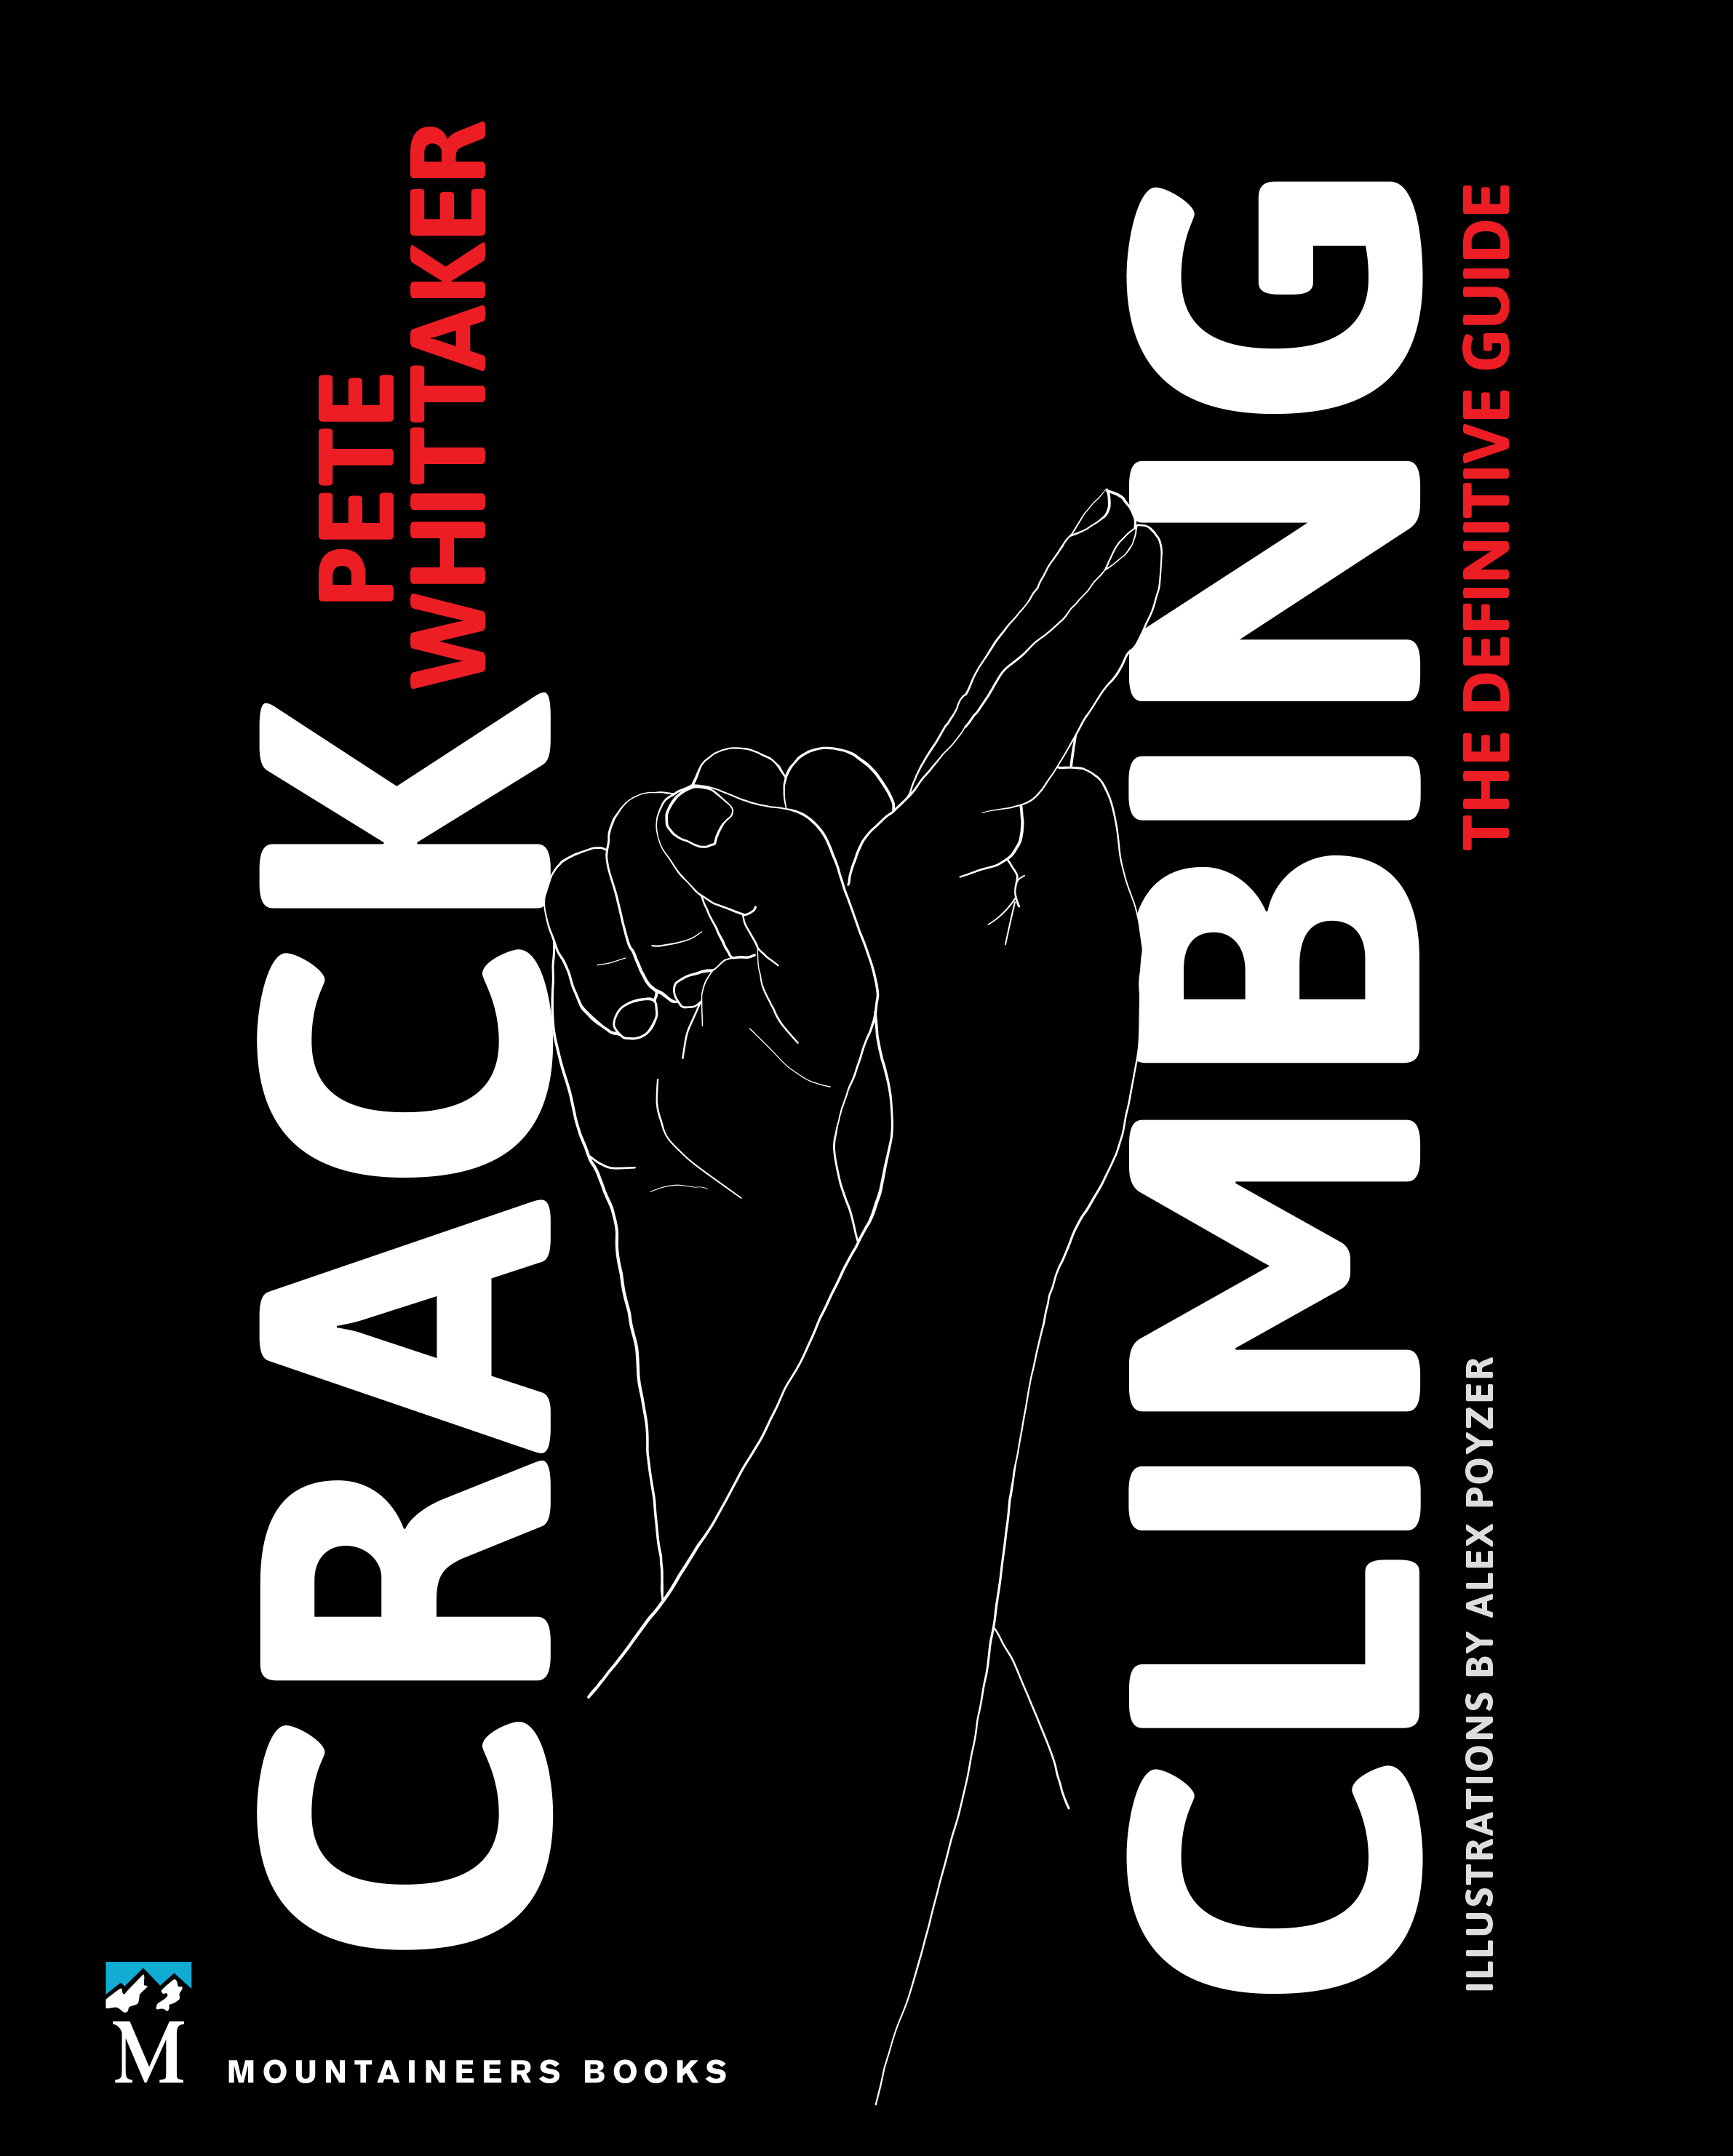 Pete Whittaker's new book on crack climbing technique.